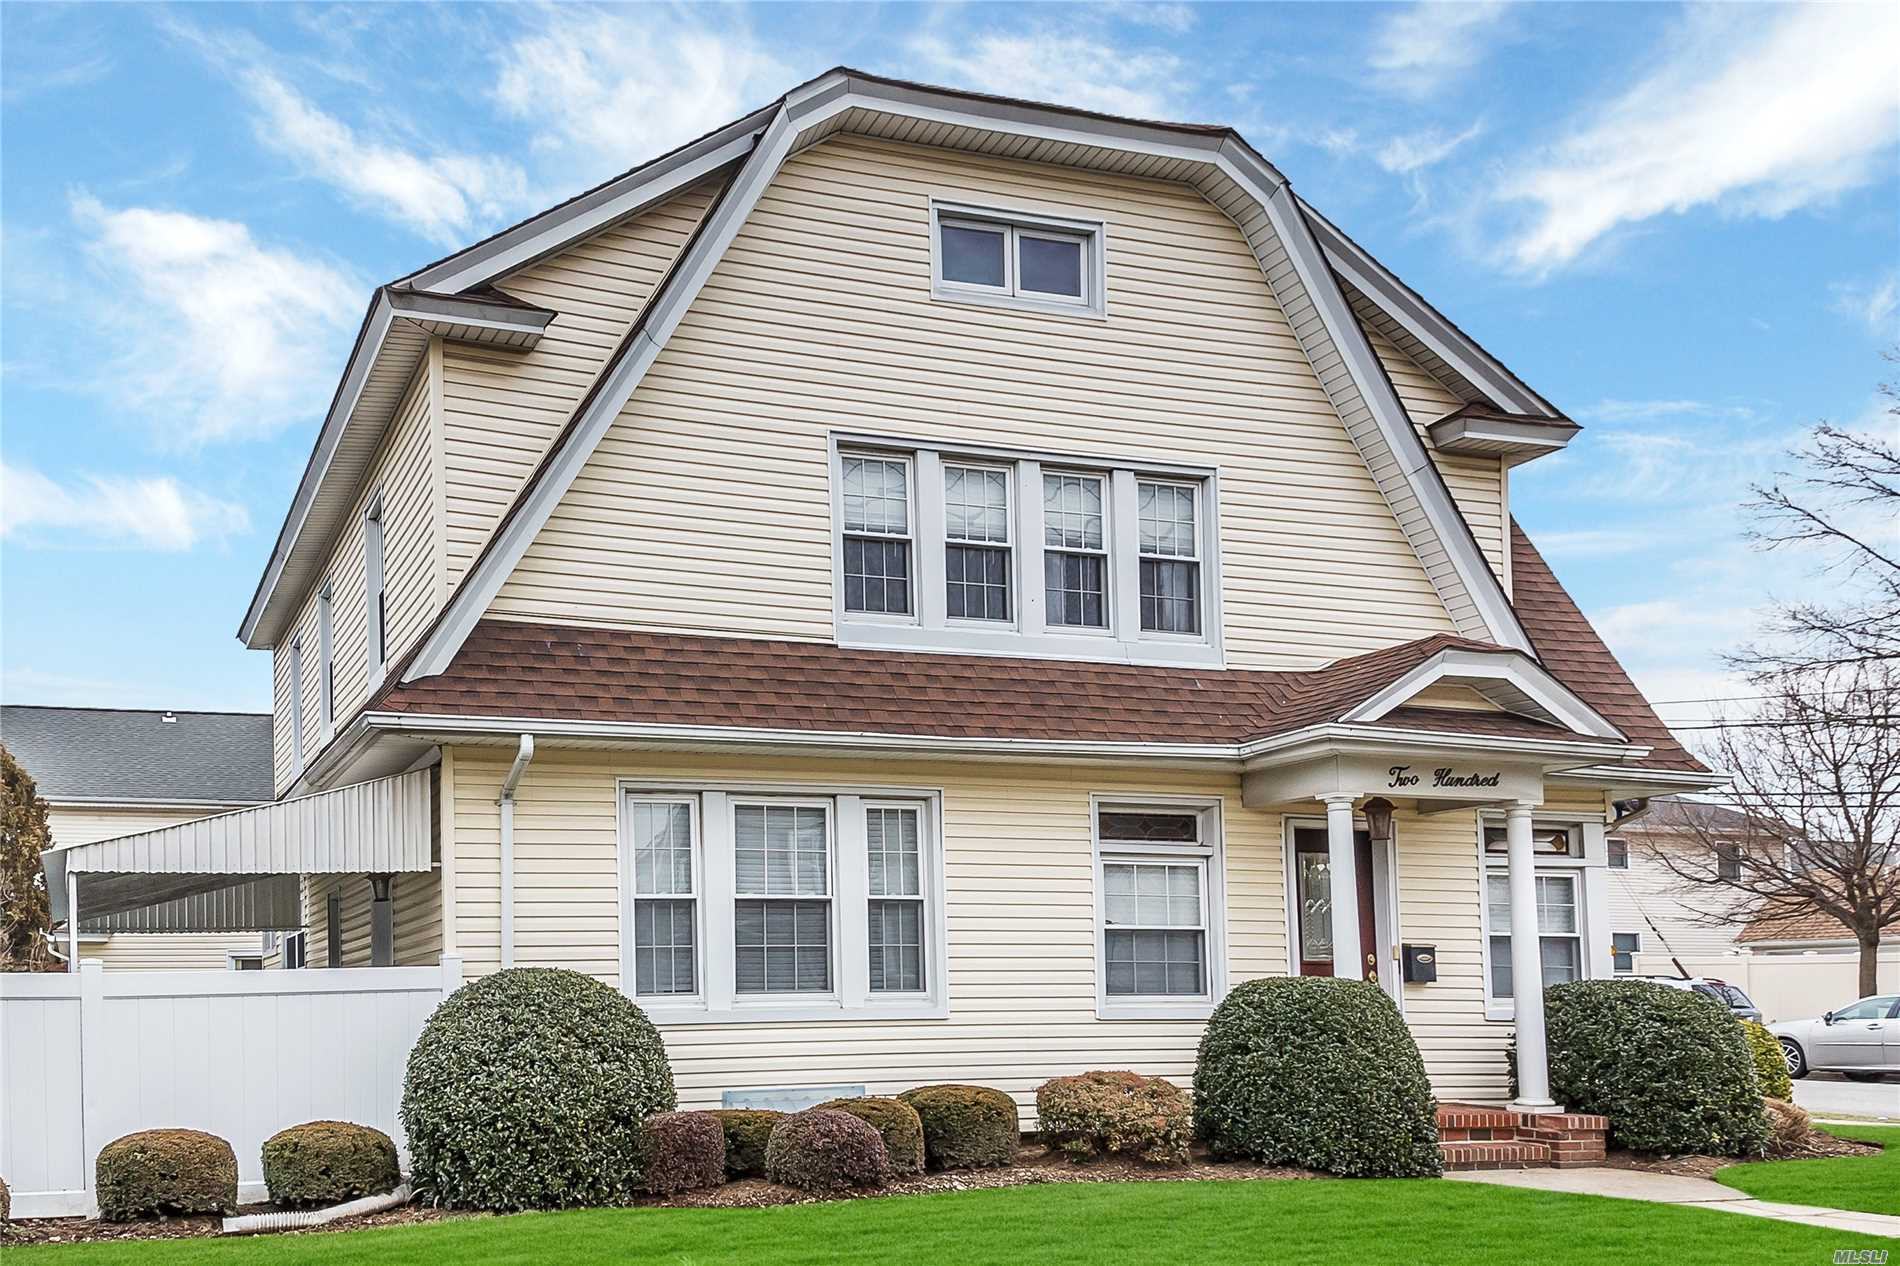 Beautifully Updated 4 Bedroom Dutch Colonial In The Park Section Of Mineola. Featuring-Large Foyer, Living Room W/Fireplace, Formal Dining Room W/ Wall Molding & Coffered Ceilings, 2 Full Baths, Eat-In-Kitchen W Granite Counters & Ss Appliances, Full Finished Basement & Attic, All Hardwood Floors-Even The Attic! Covered Porch, Large Driveway W/2 Car Garage, Close To Lirr, Library, Park, Hospital & Close To Shopping & Restaurants . Seeing Is Believing! A True Must See..